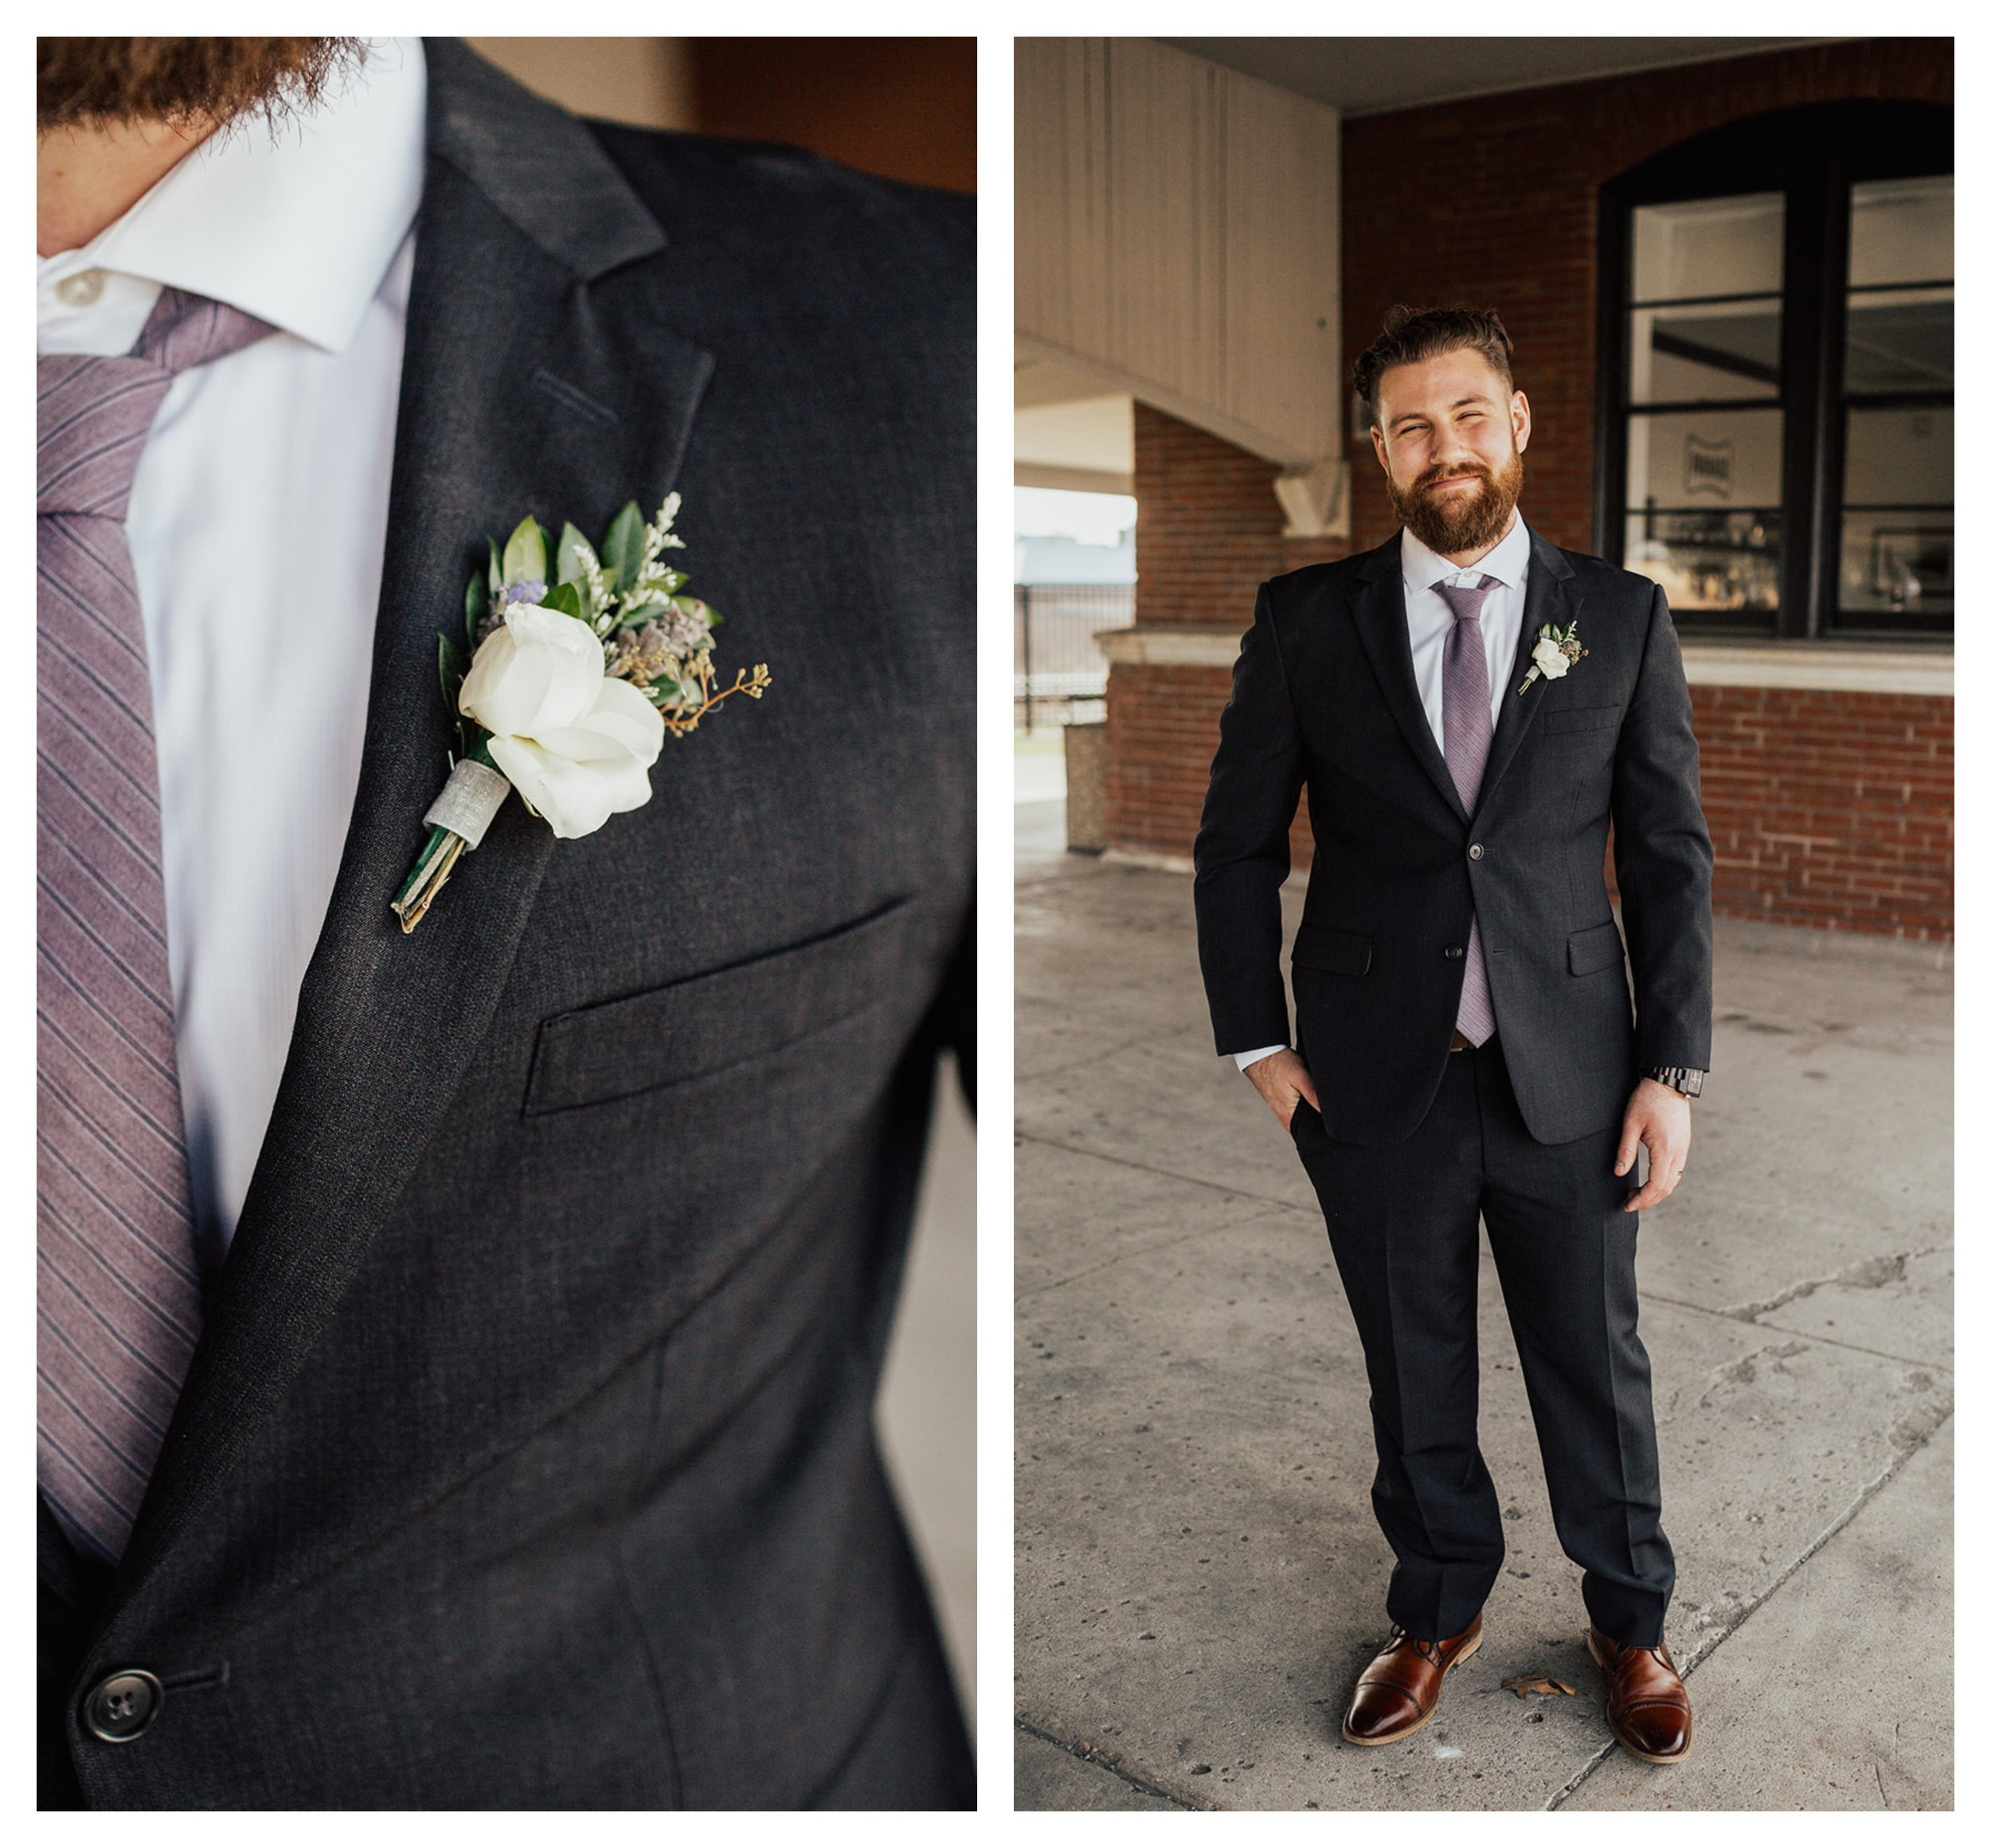 Wedding Day Suites For Groom_Kansas City